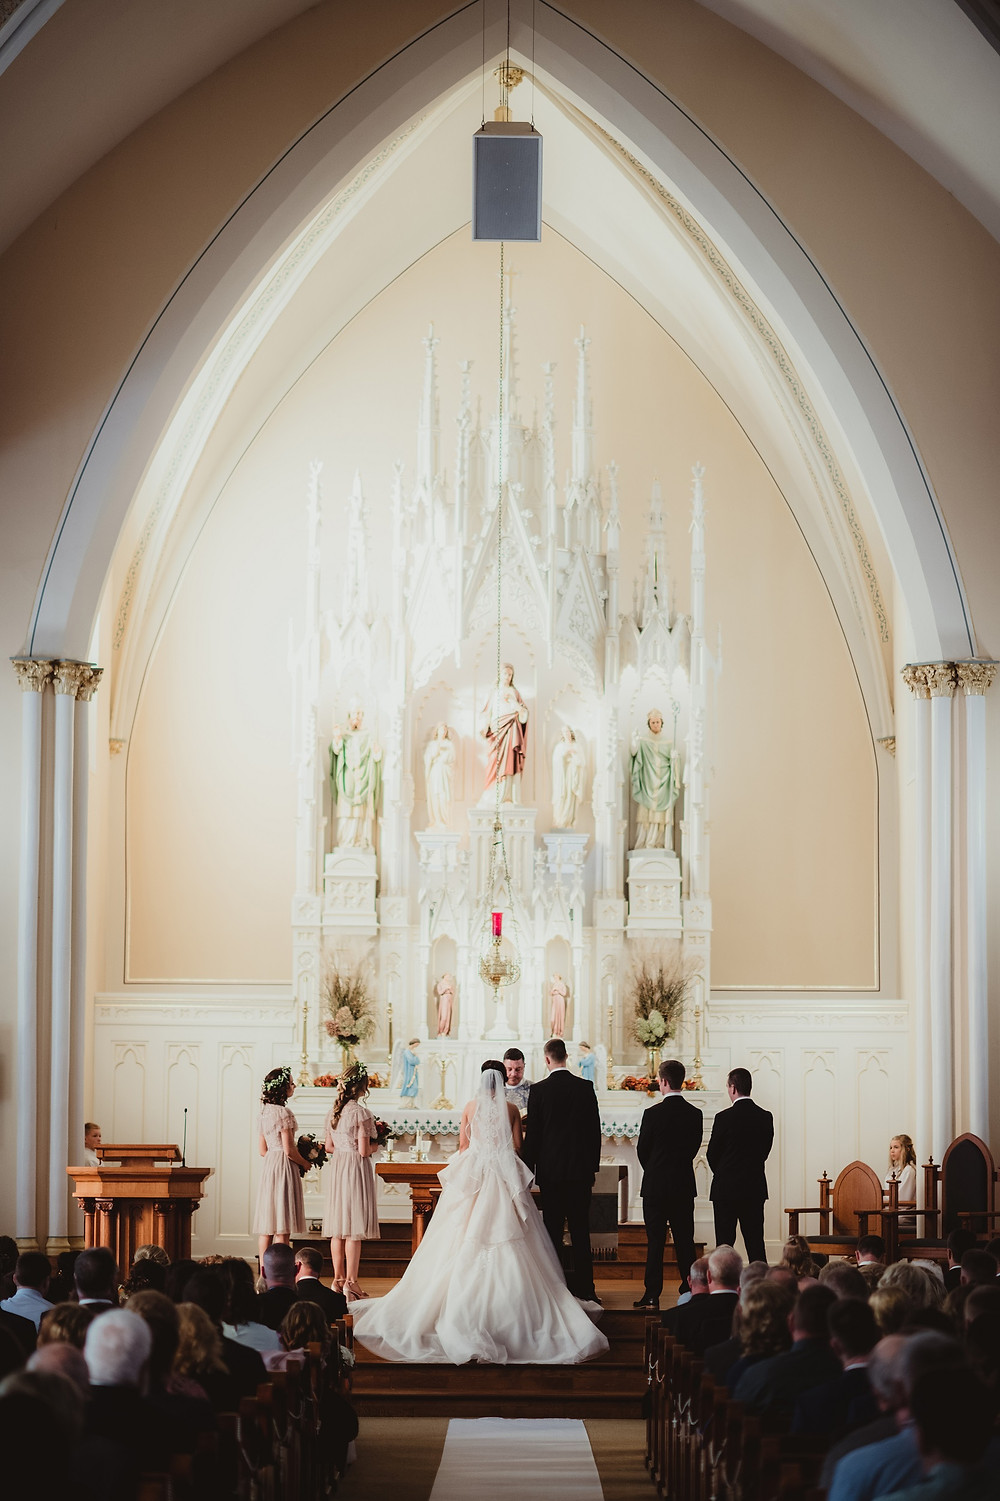 wedding ceremony at St Matthias catholic church in cascade, iowa.